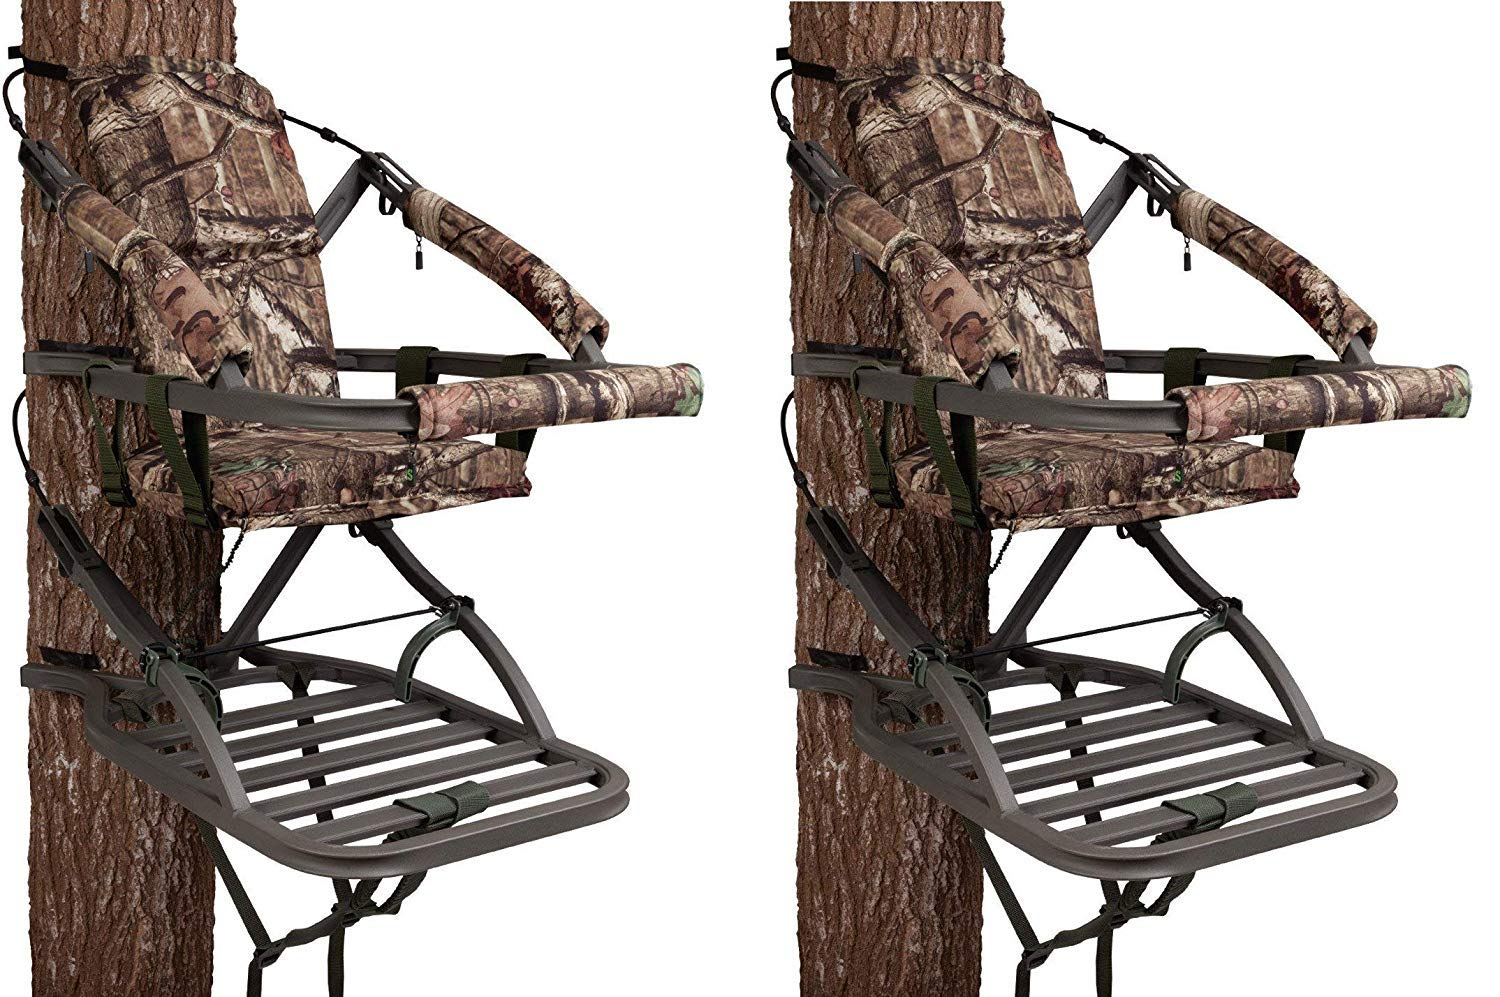 Summit Treestands 81120 Viper SD Climbing Treestand, Mossy Oak (Pack of 2)